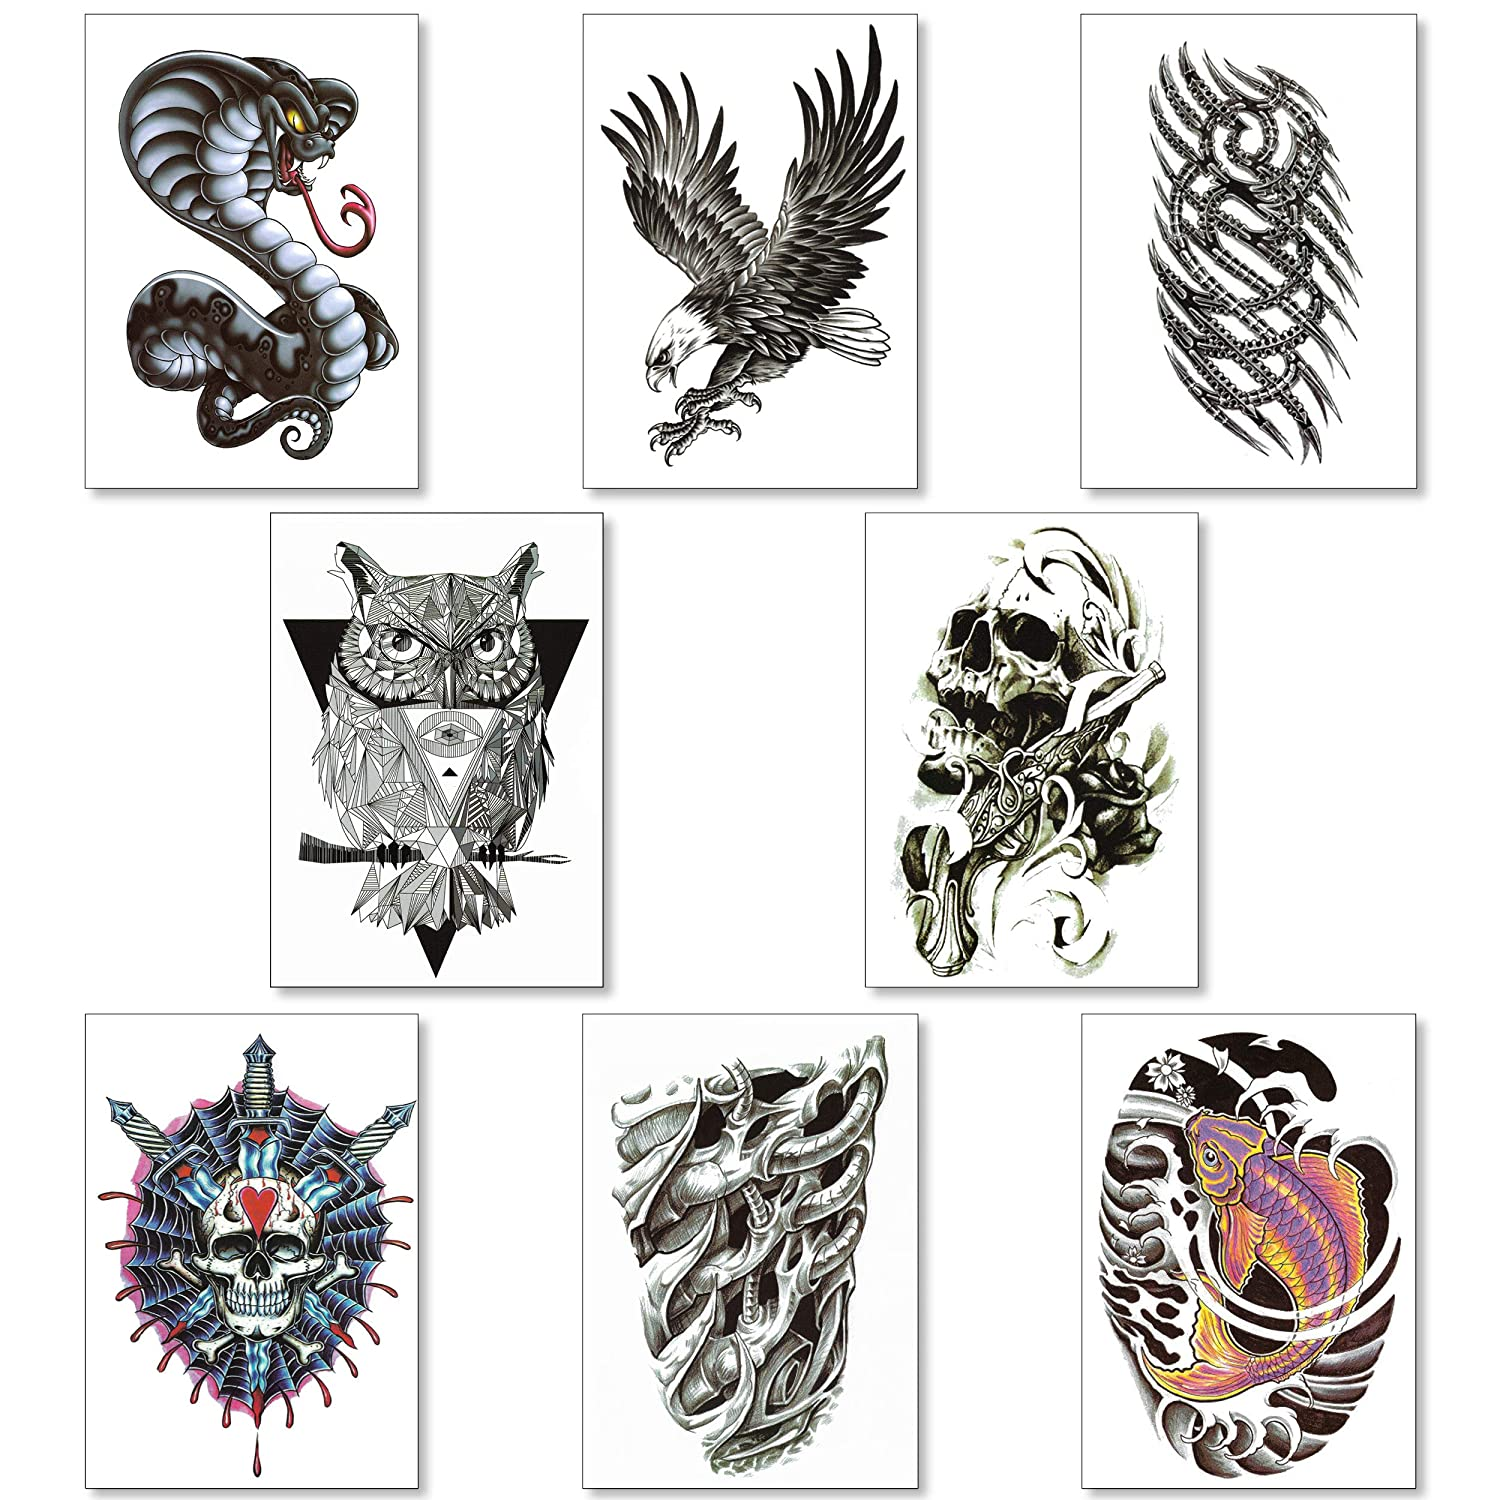 Amazon Com Temporary Tattoos For Men Guys Boys Teens 8 Large Sheets Fake Tattoos Stickers For Arms Shoulders Chest Back Legs Eagle Koi Fish Skull Gun Owl Tattoo Realistic Body lion tattoo for men. temporary tattoos for men guys boys teens 8 large sheets fake tattoos stickers for arms shoulders chest back legs eagle koi fish skull gun owl